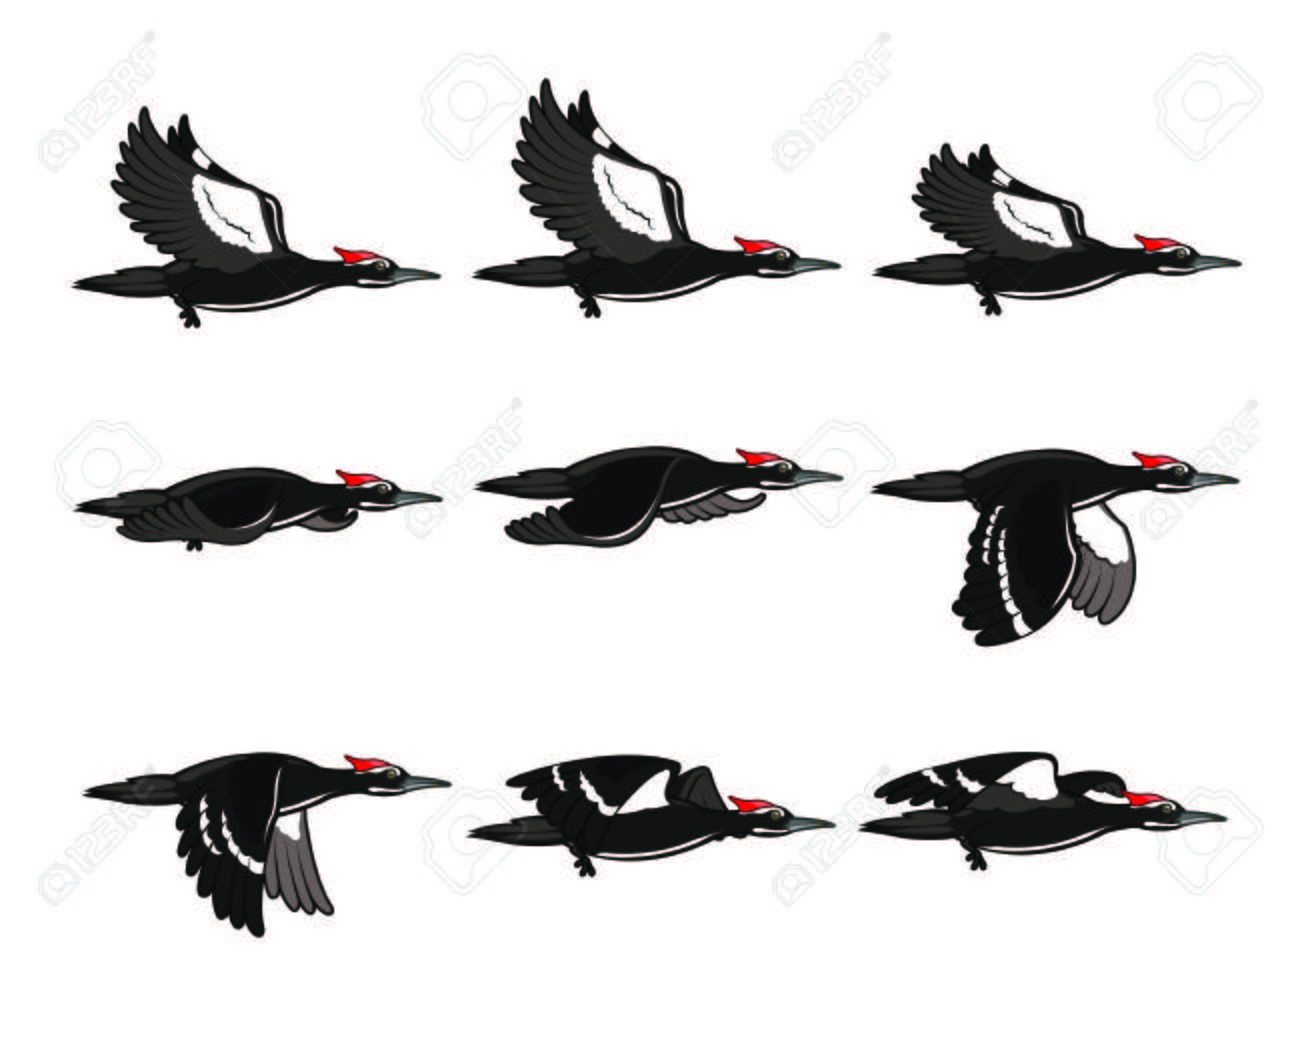 1405 Woodpecker Cliparts Stock Vector And Royalty Free